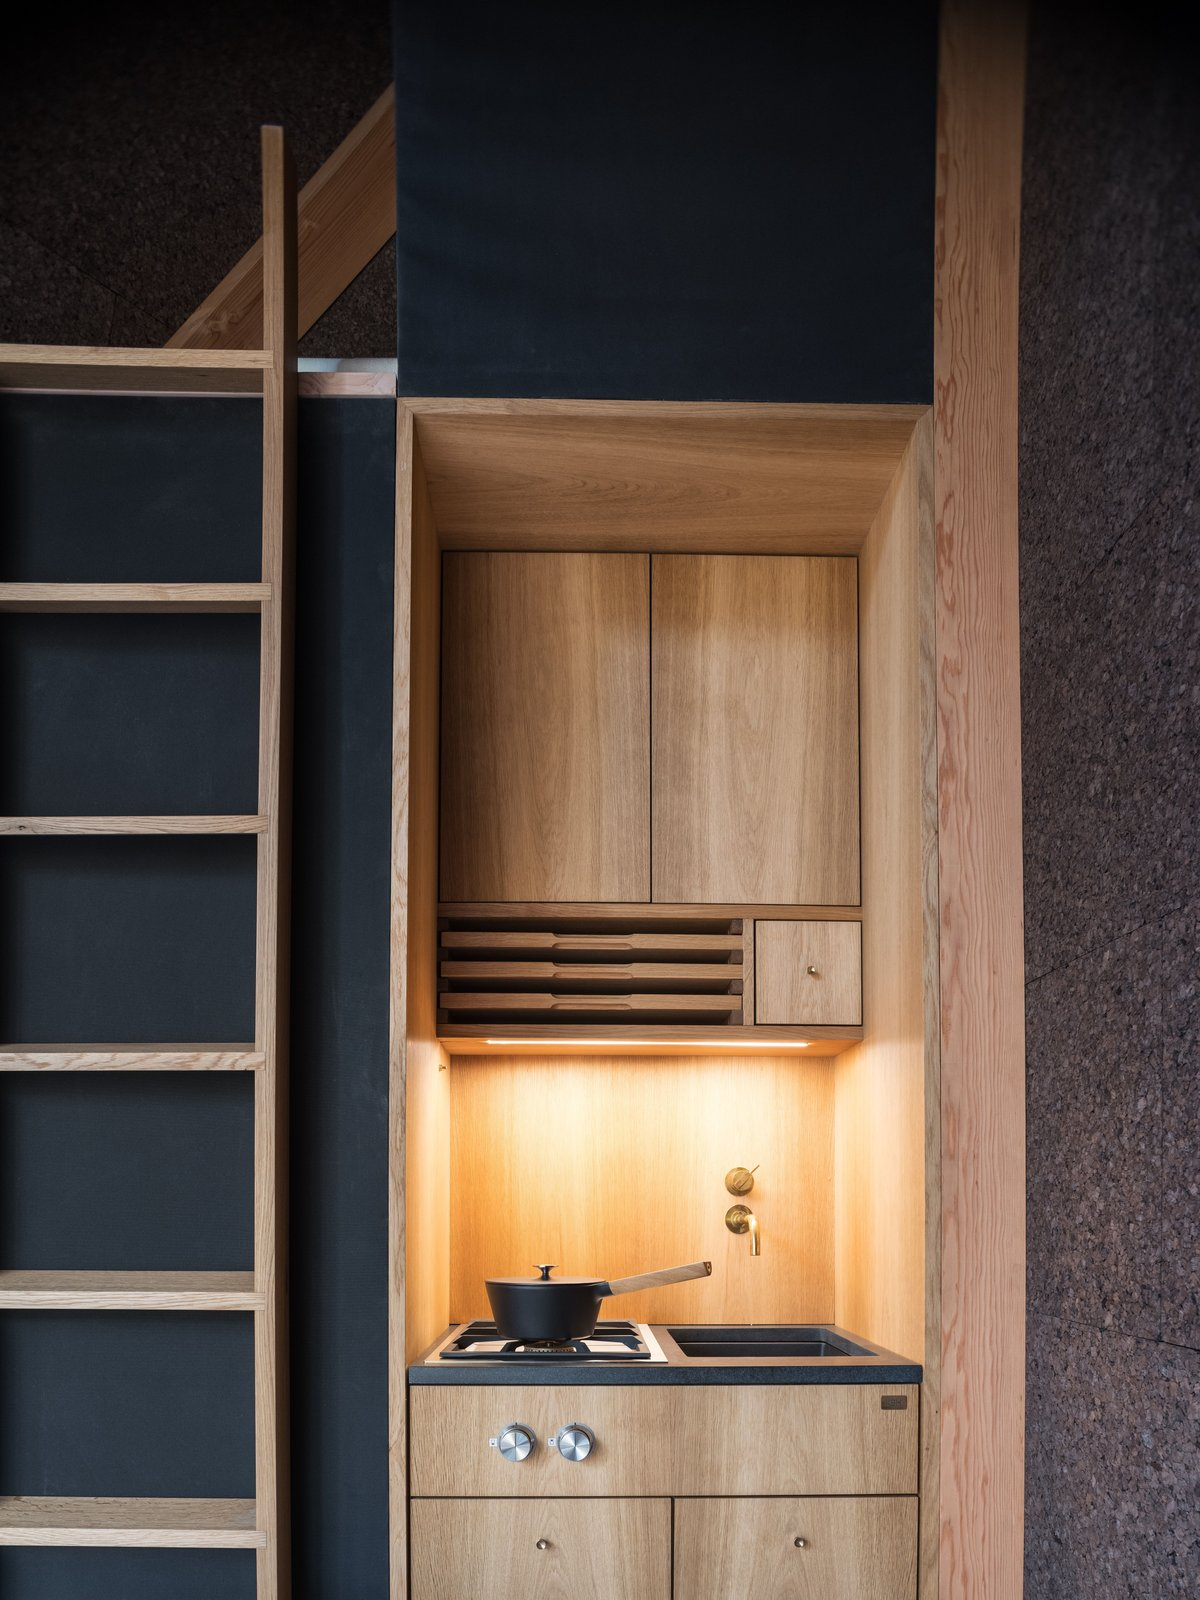 Kitchen, Wood, Wood, Wood, Cooktops, Undermount, and Accent The A45 is outfitted with a petite kitchen designed by Københavns Møbelsnedkeri.     Best Kitchen Cooktops Accent Photos from This Sleek, Angular Tiny Home Is Not Your Average A-Frame Cabin